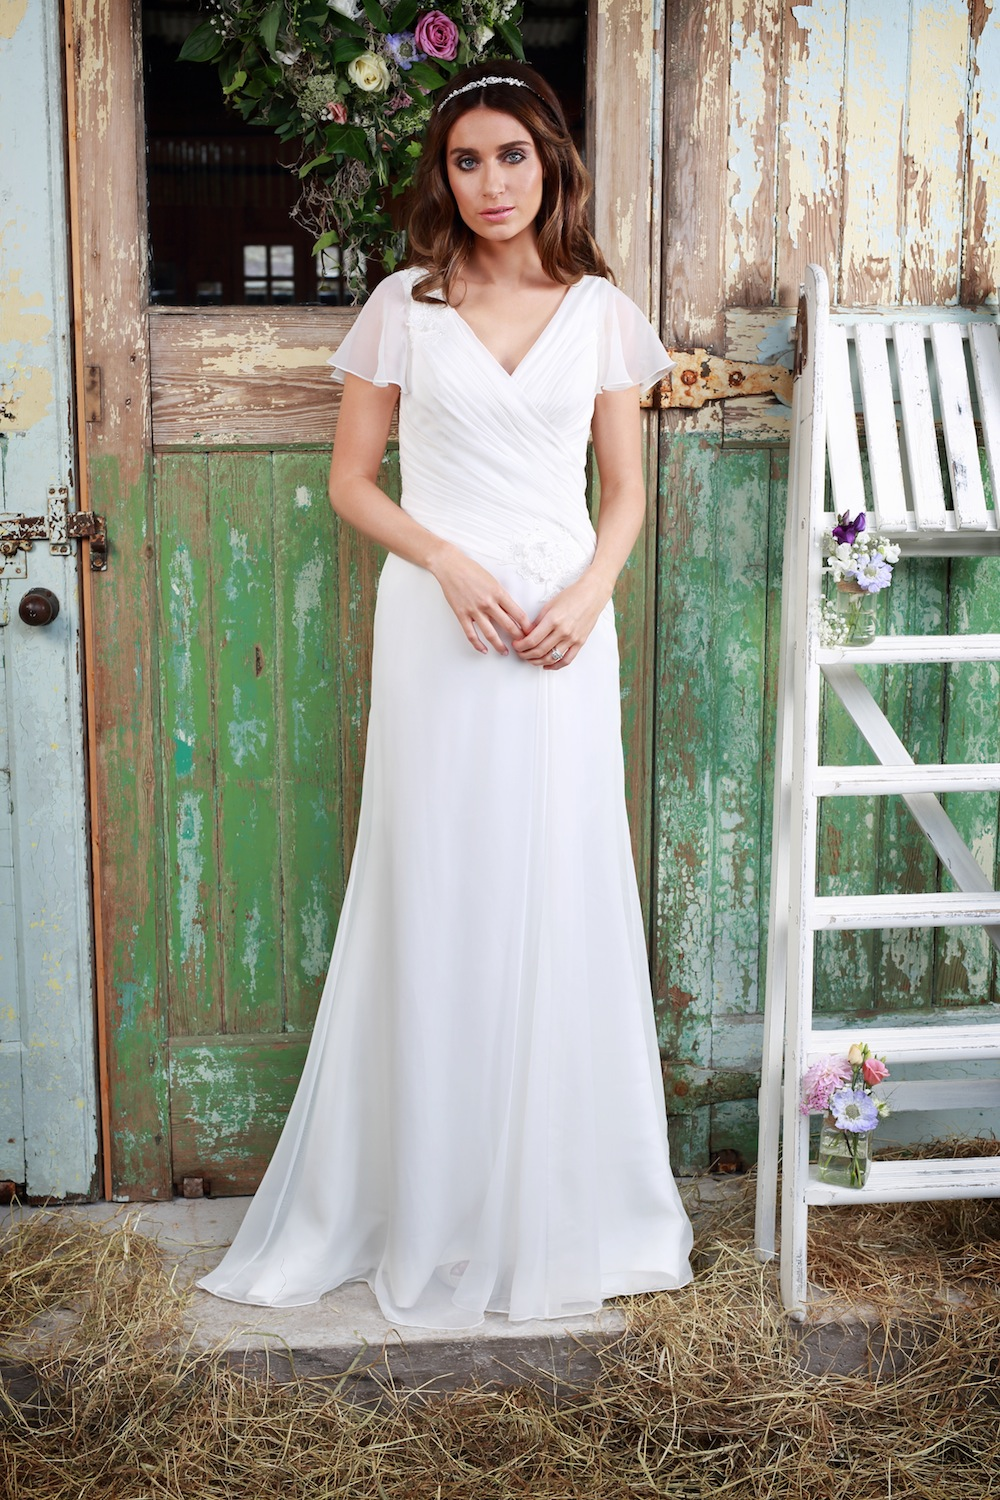 Amanda Wyatt Wedding Gown - Logan chiffon gown with a dreamy V-neck line + hand-stitched pleating